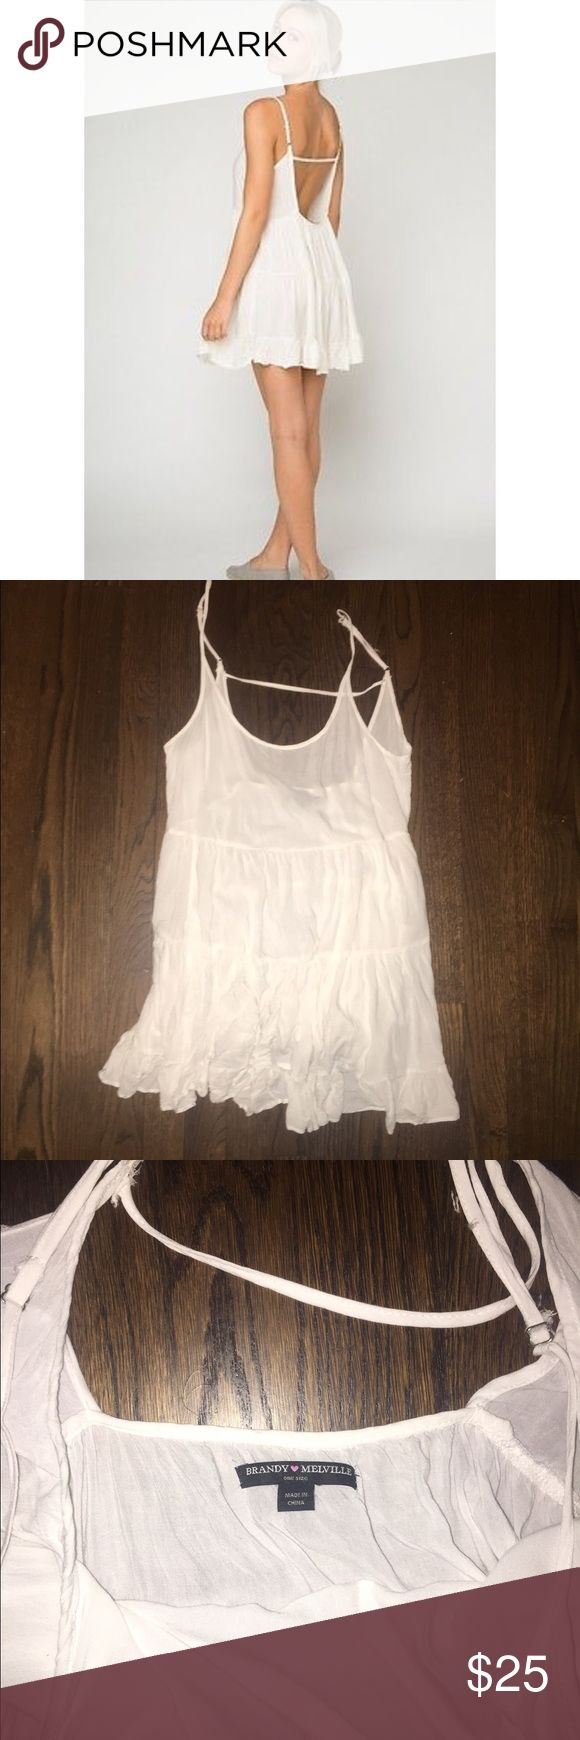 Brandy Melville Jada Dress White Worn 2-3 times. Wrinkles easy so it has a grunge look in the pictures but I assure you it's in great condition! One size but fits XS to M I would say. Very short but very light and cute, perfect for over a bathing suit. Brandy Melville Dresses Mini